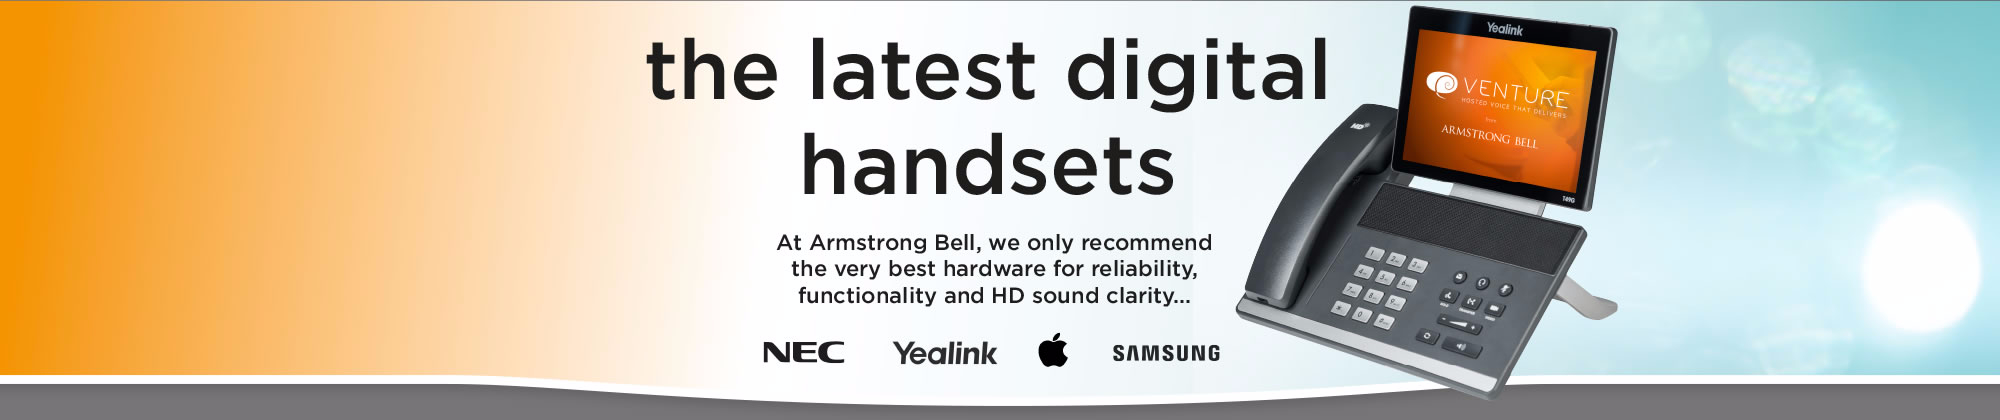 Armstrong Bell - Business Telecom Systems -